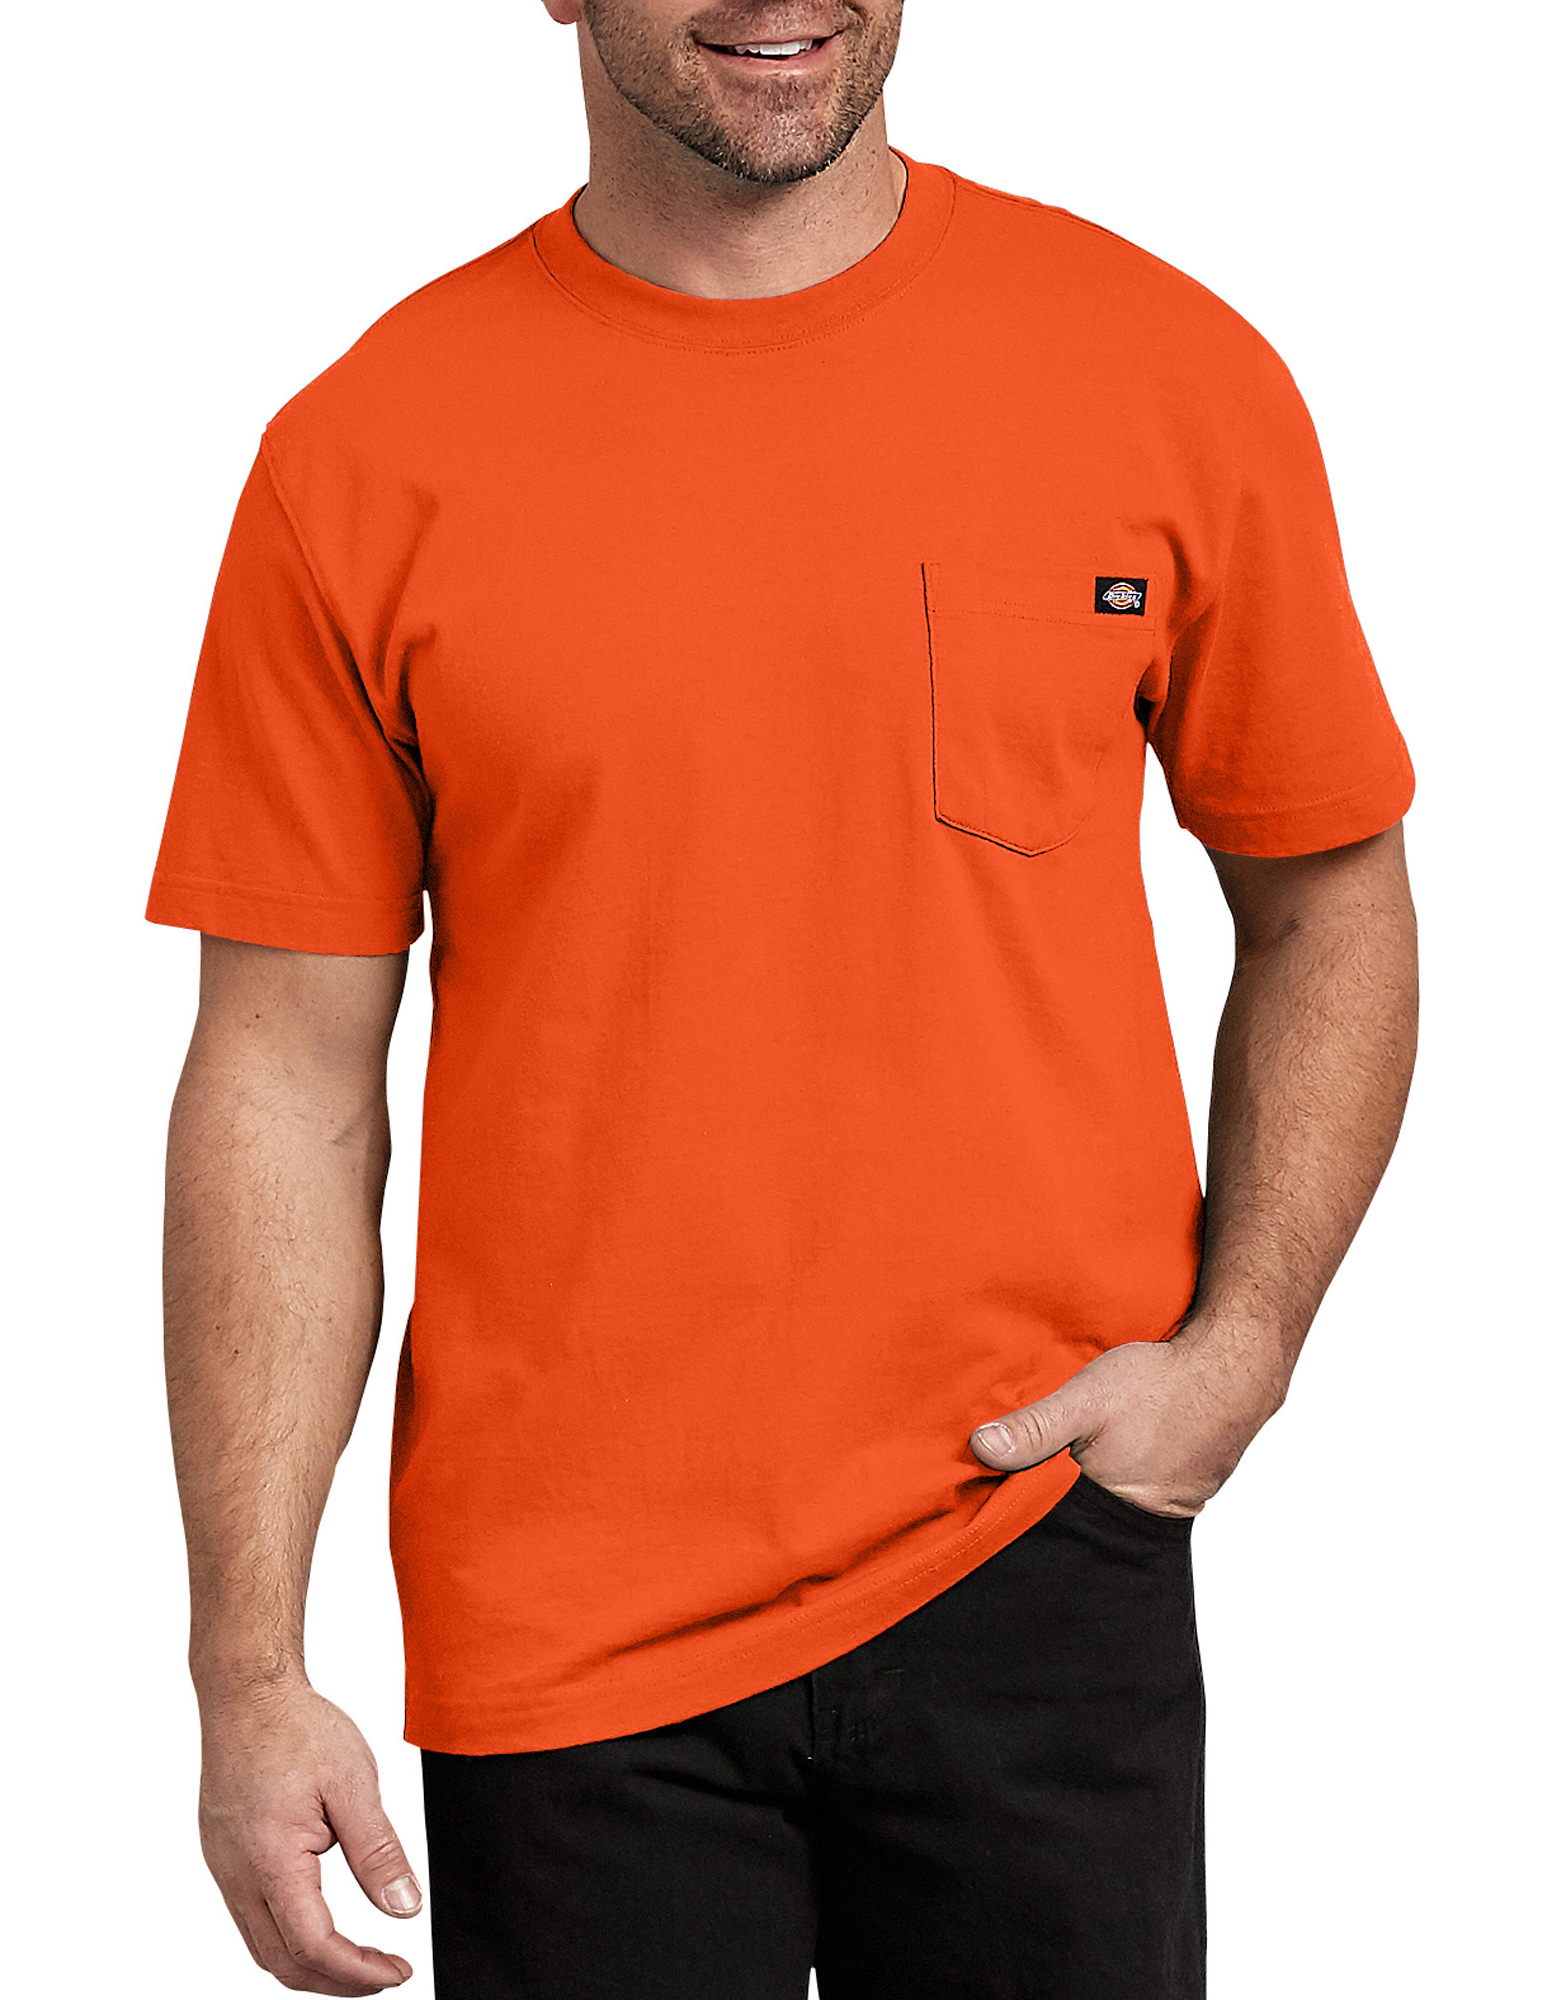 Short Sleeve Heavyweight T-Shirt - Orange (OR)